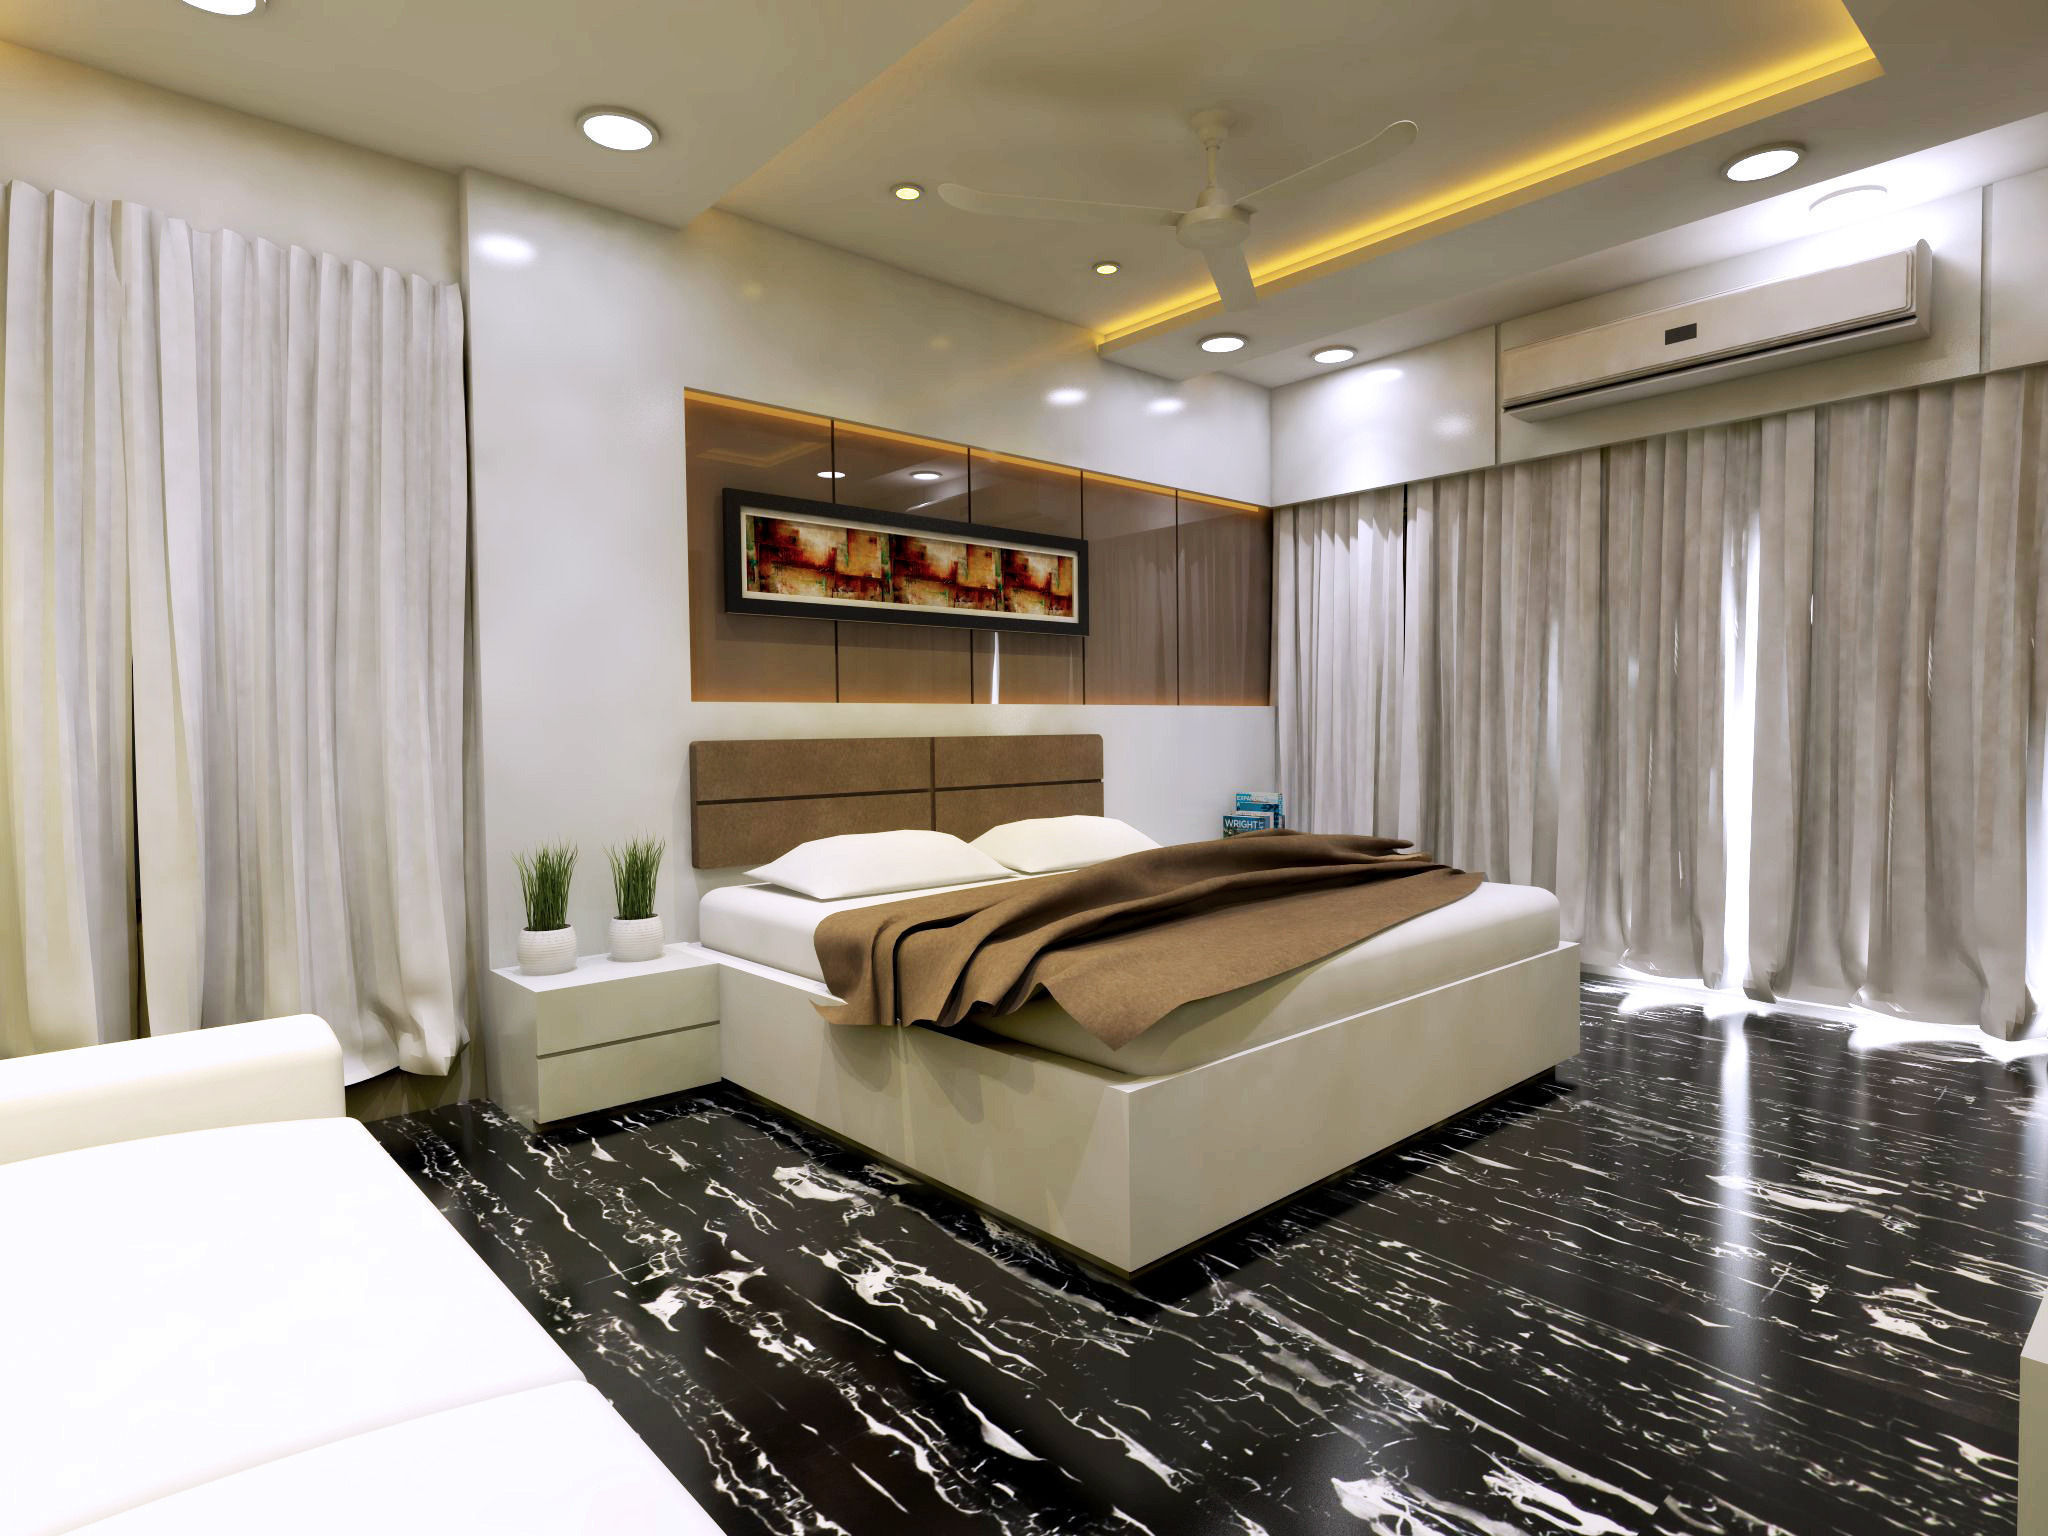 Modern bedroom interior vray rendered 3d model skp for Modern bedroom interior